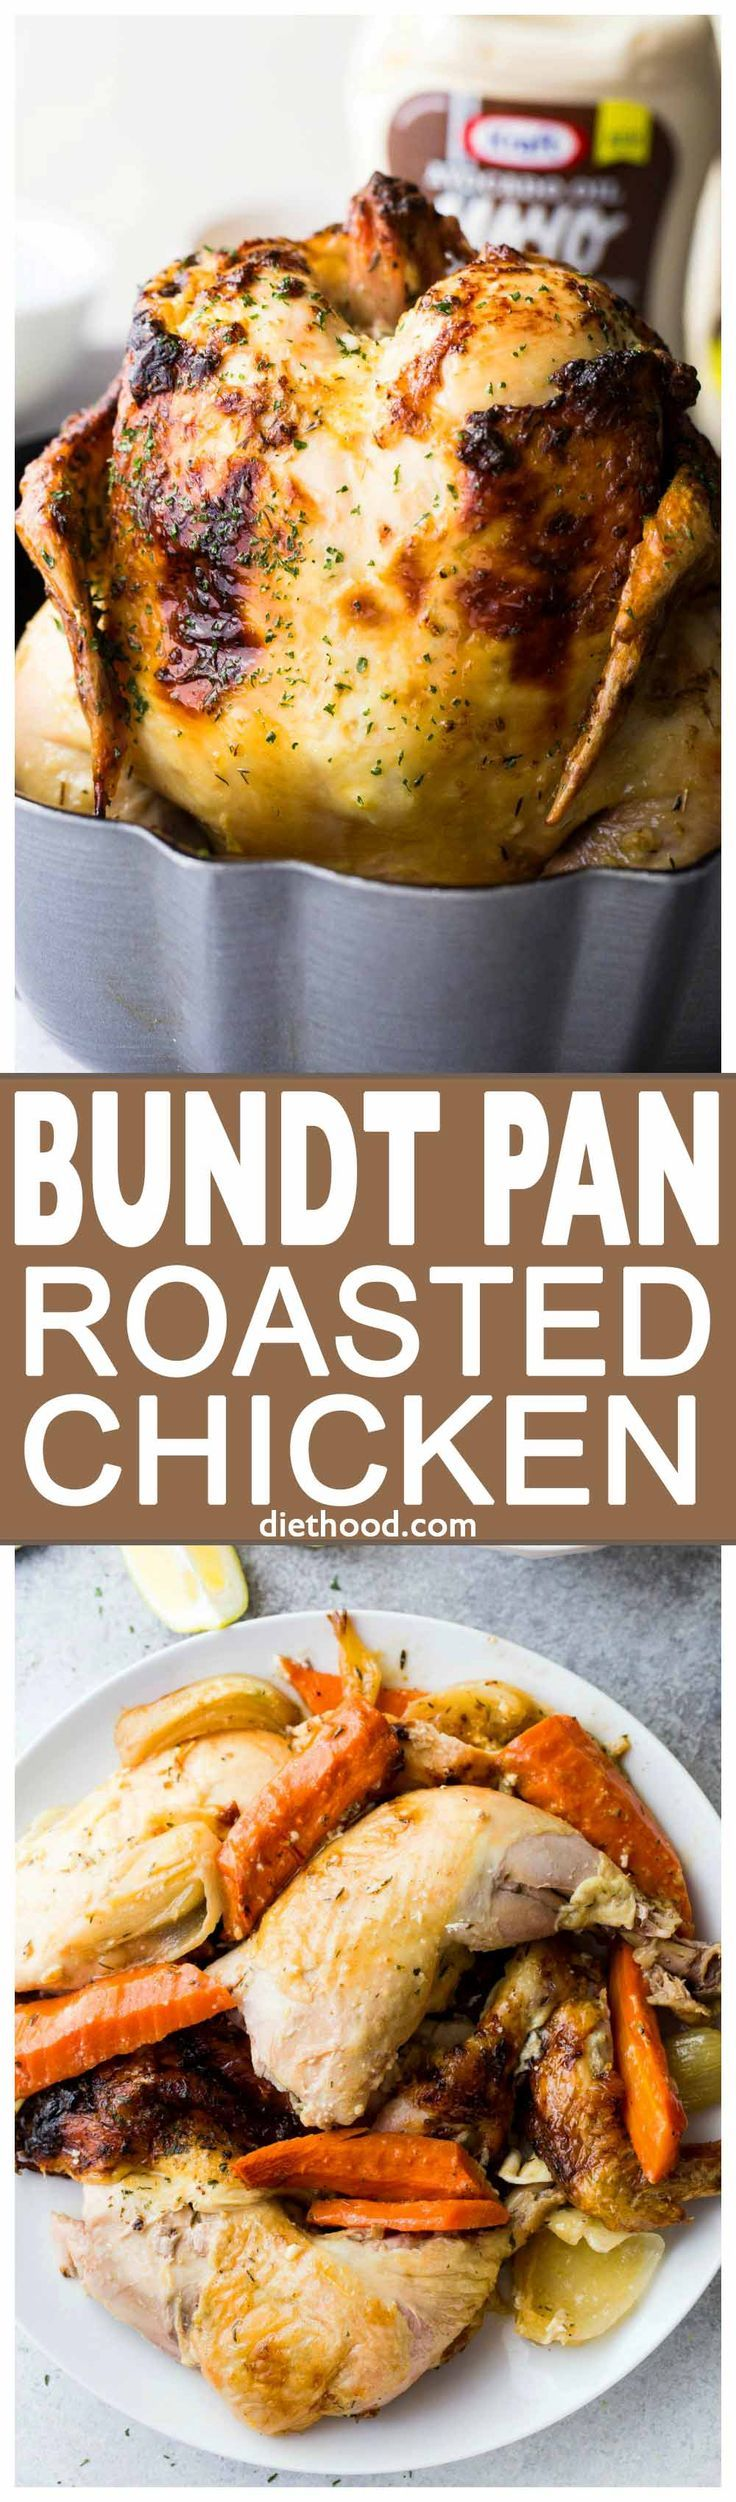 Bundt Pan Roasted Chicken - Super moist and incredibly flavorful bundt pan roasted chicken prepared with avocado-oil mayonnaise, herbs, and lemons!